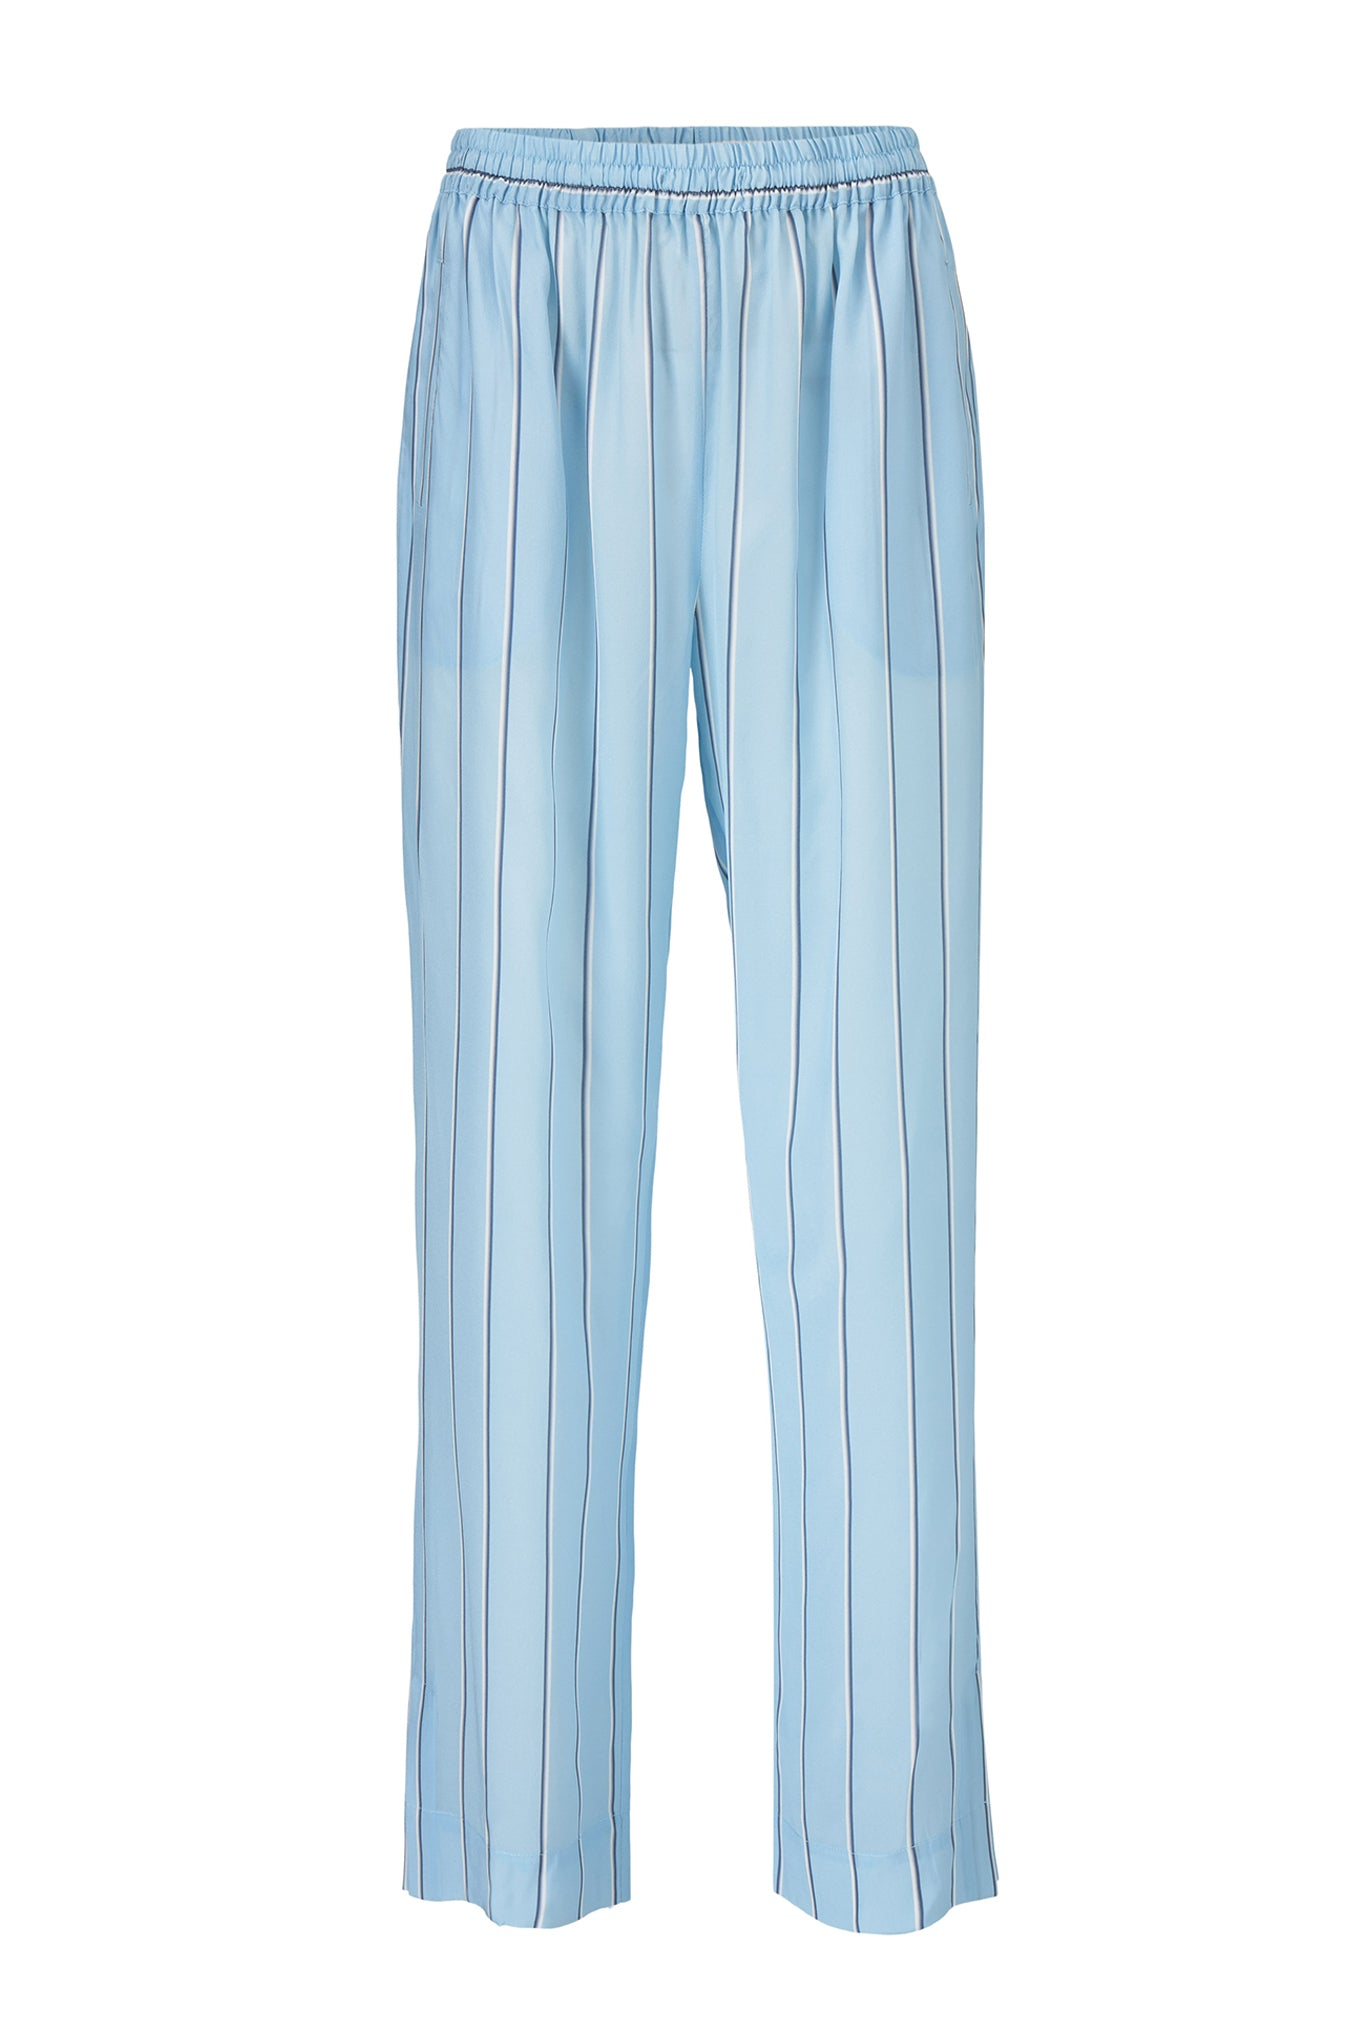 ELI SLIT PANTS - BLUE STRIPE